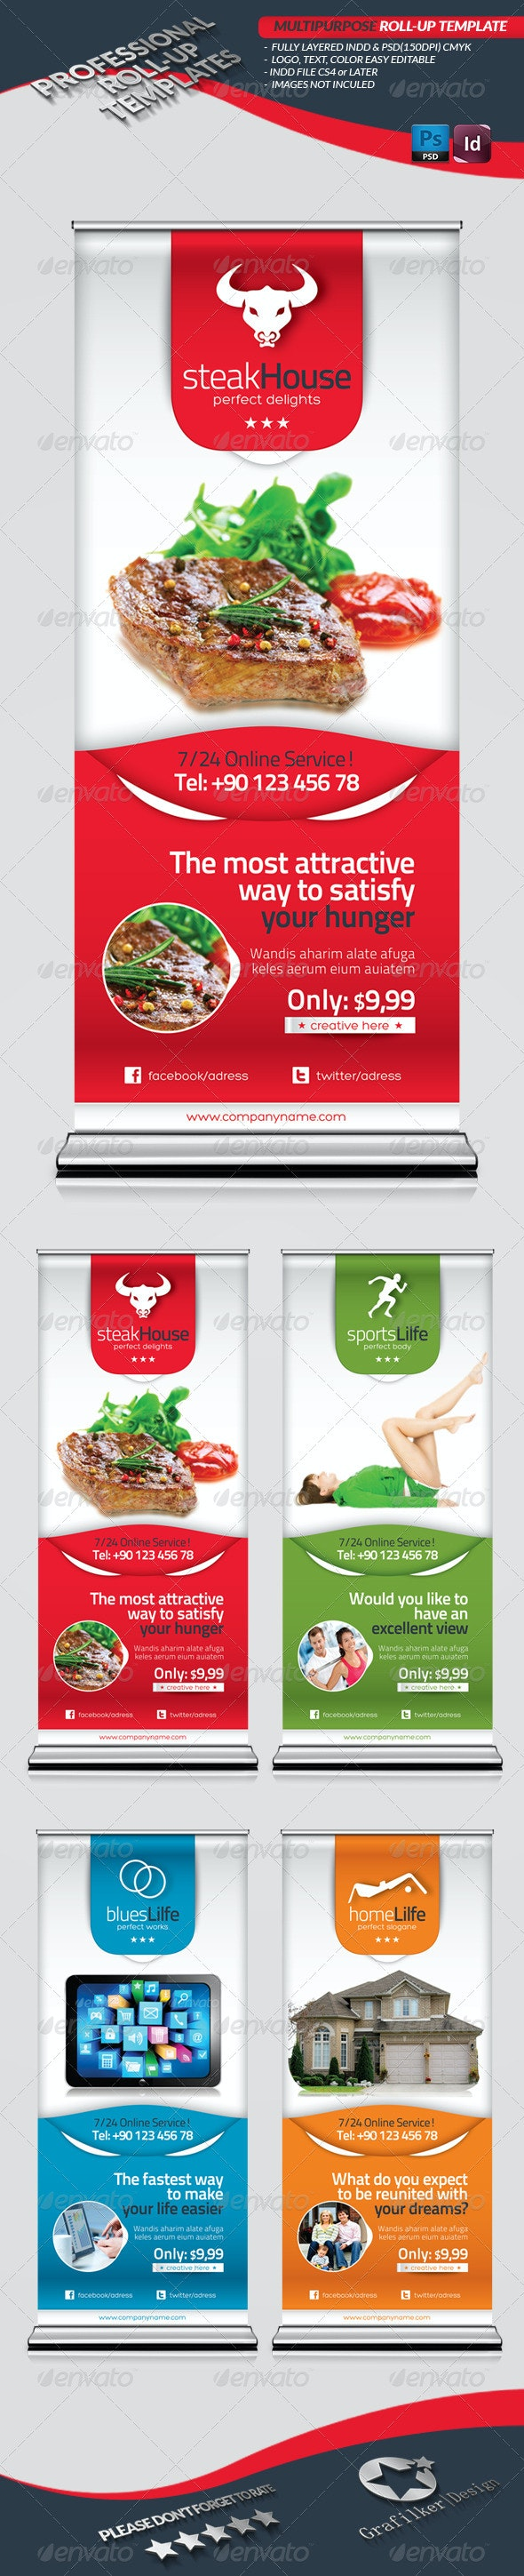 Multipurpose Roll-Up Template - Signage Print Templates